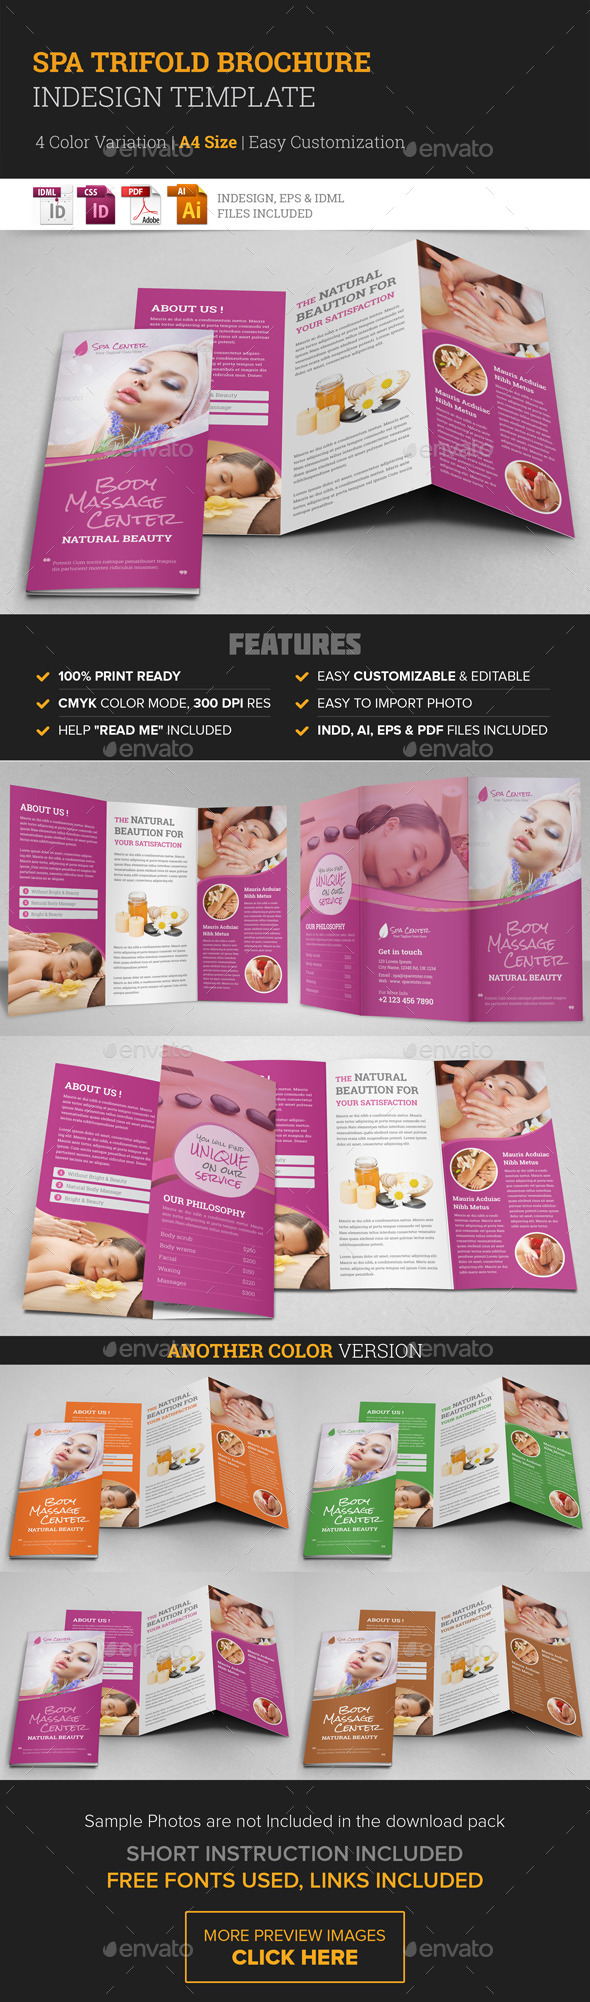 Spa & Beauty Salon Trifold Brochure Template - Corporate Brochures